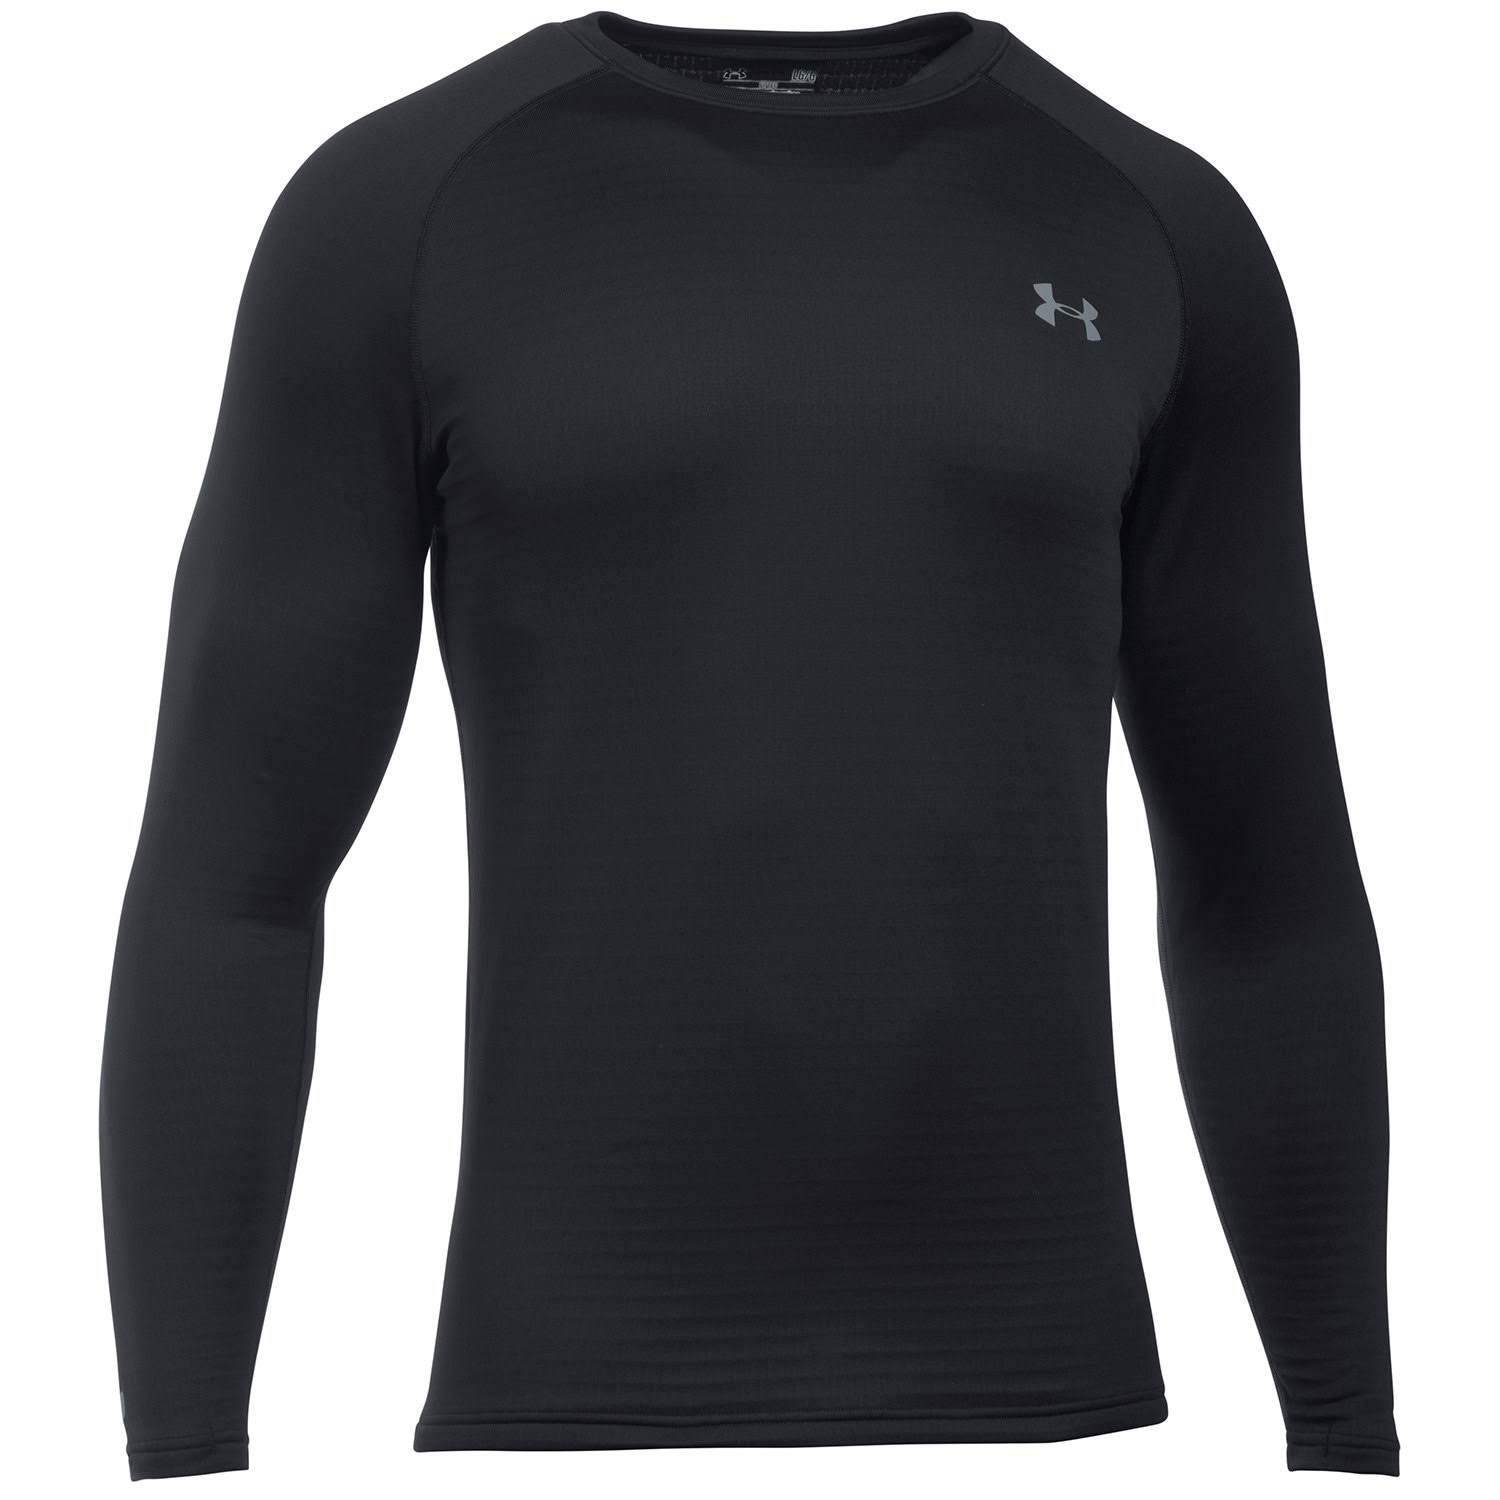 Under Armour Men's Base 3.0 Crew Long Sleeve Shirt - Black, Small